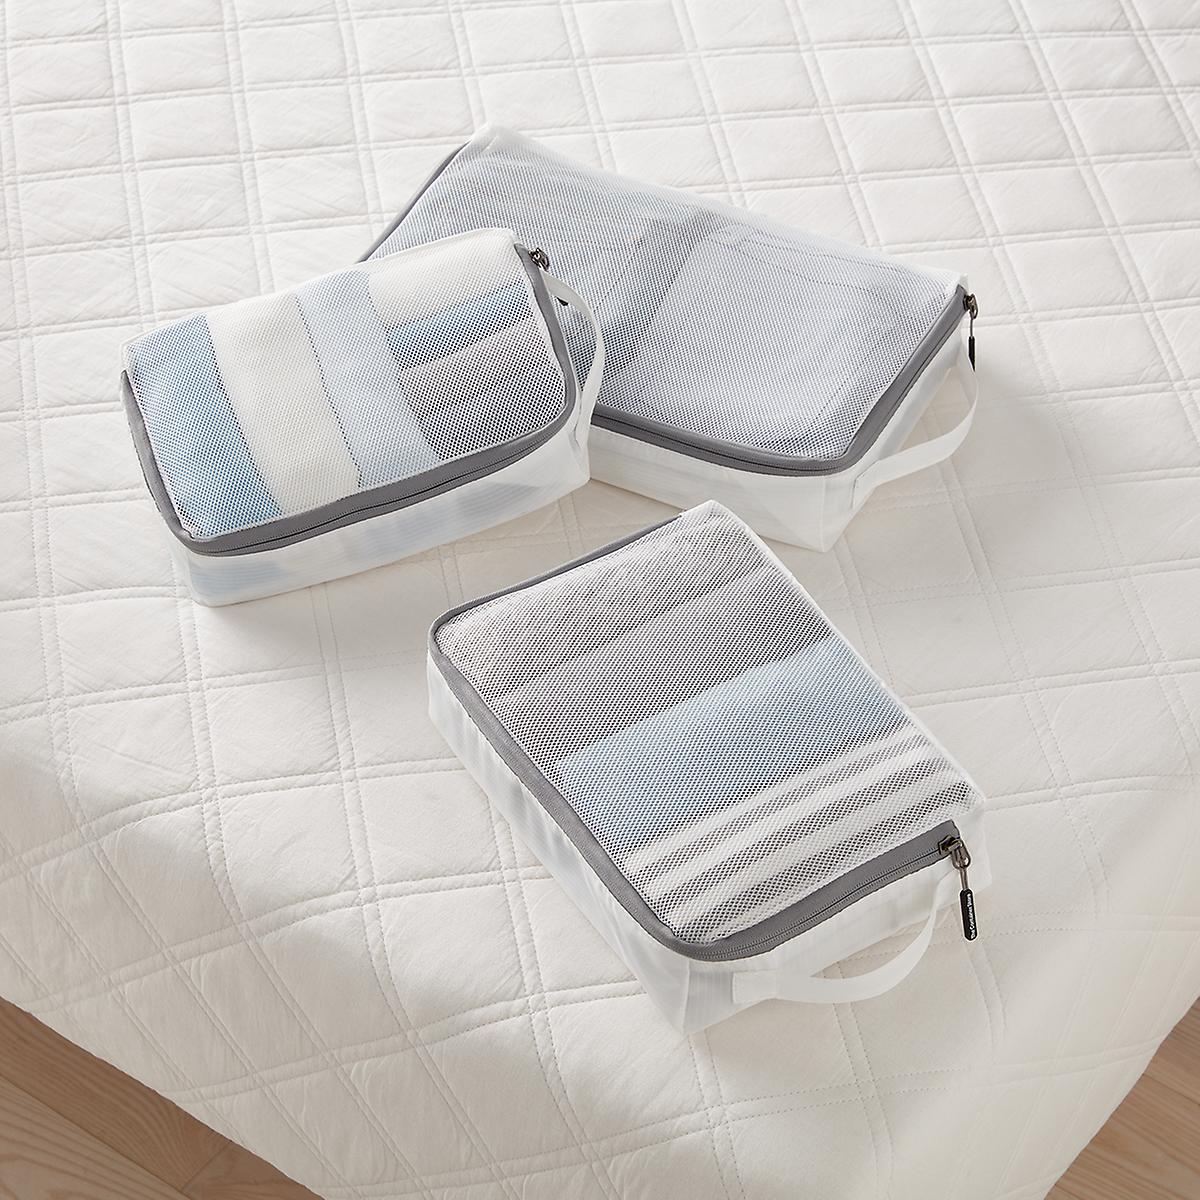 Translucent Packing Cubes Set of 3